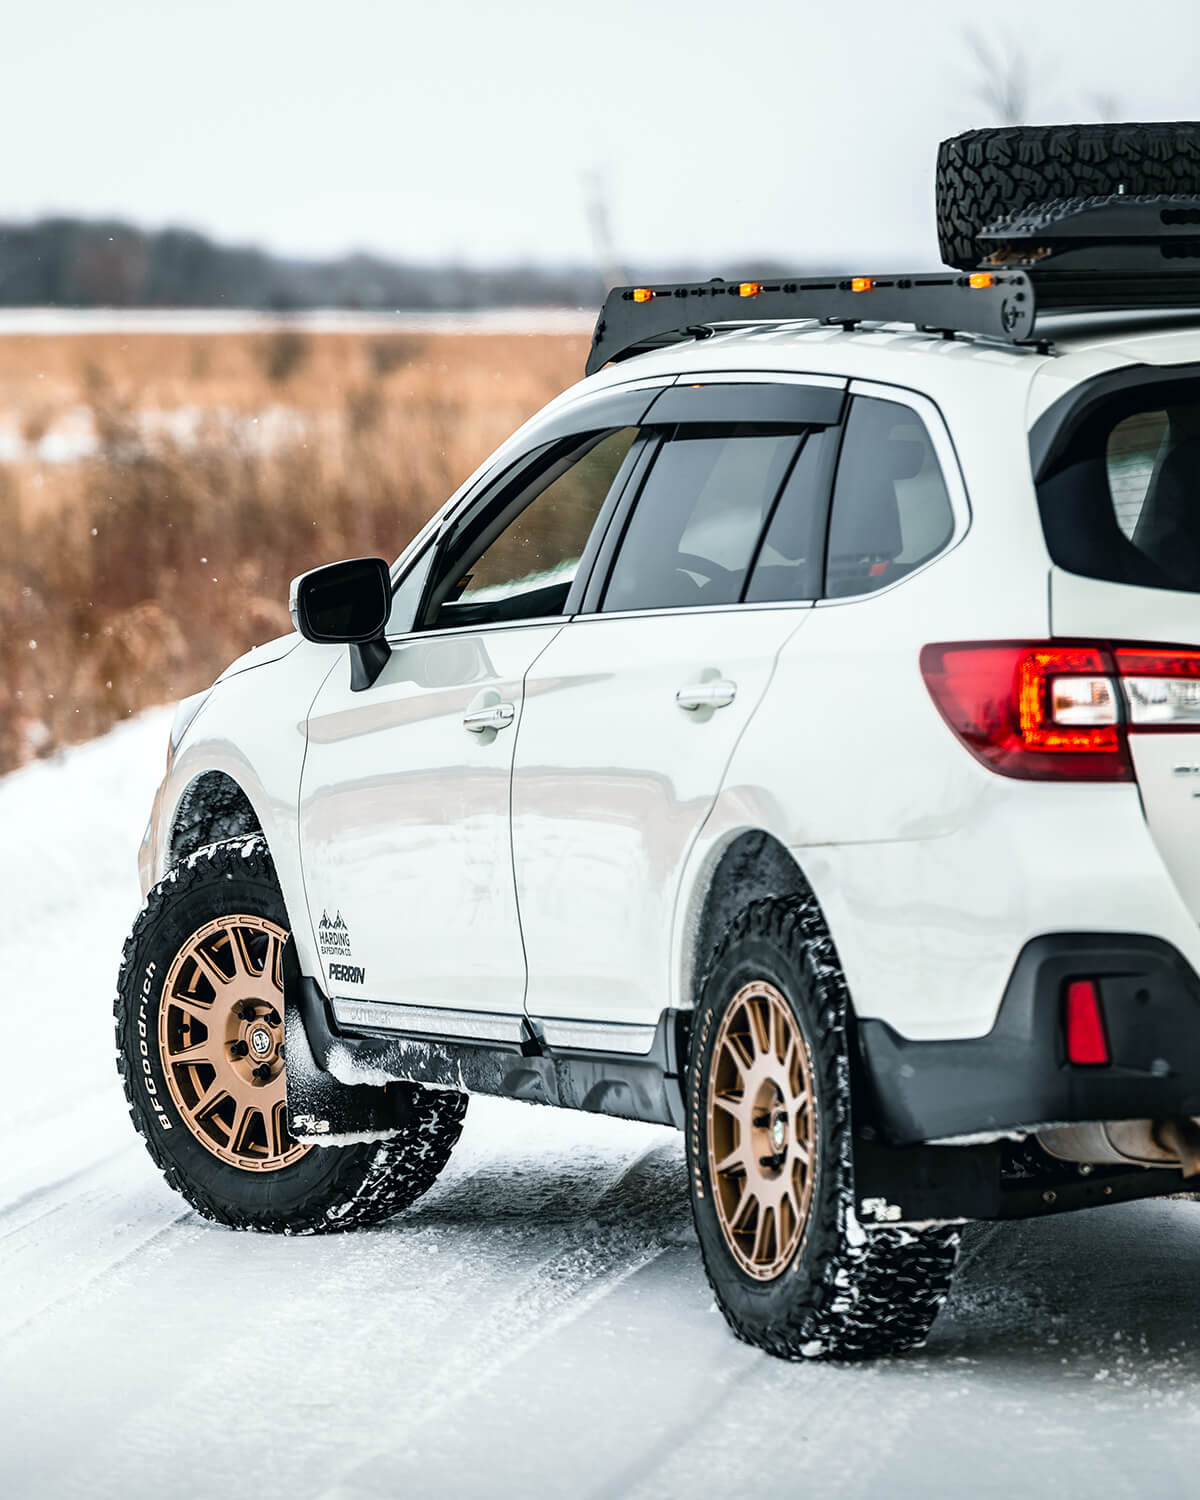 White Lifted Subaru Outback Overland Offroad project